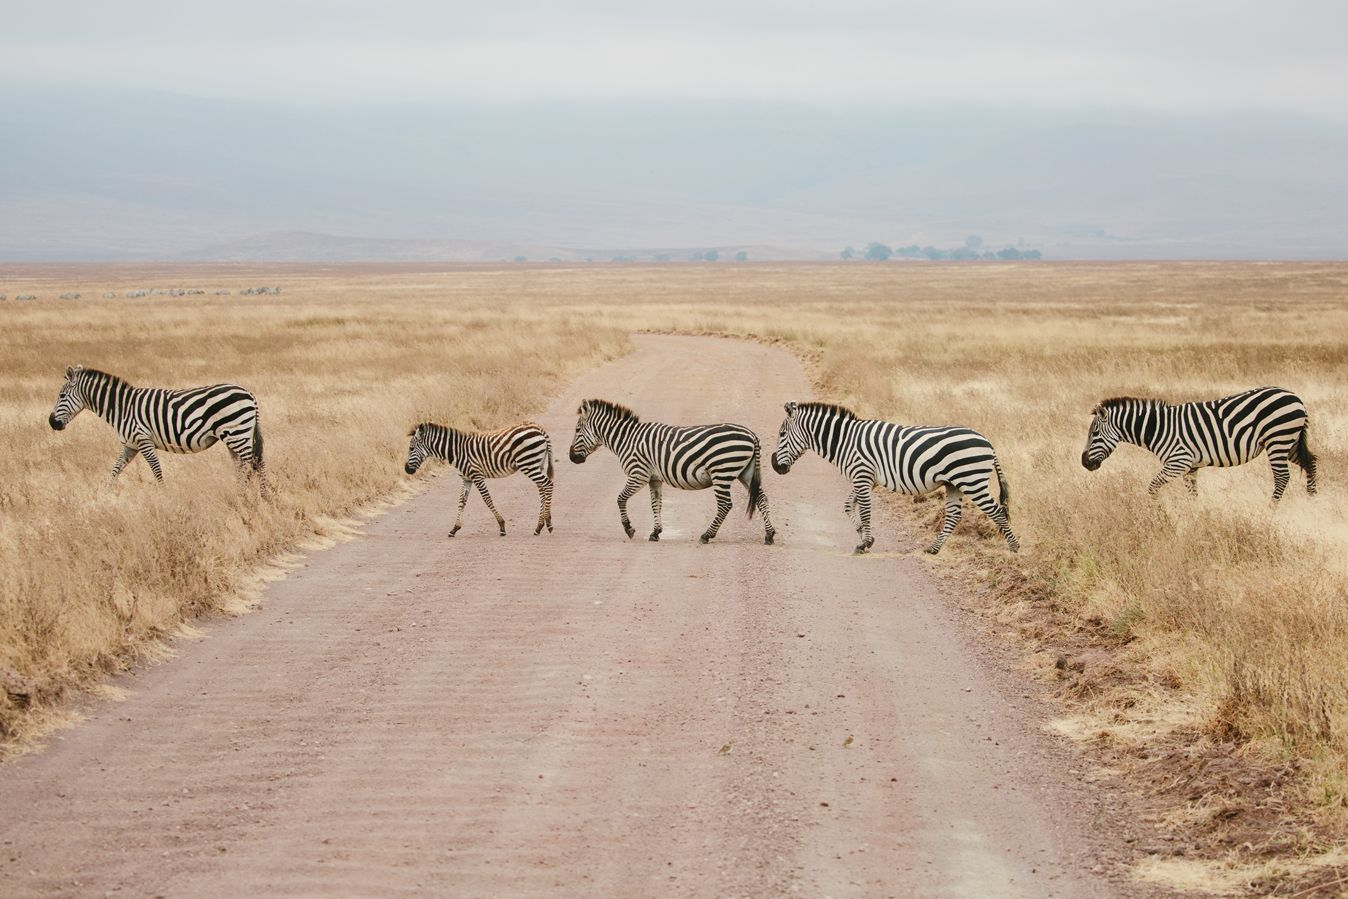 A herd of zebra in the Engaruka Valley landscape in northern Tanzania